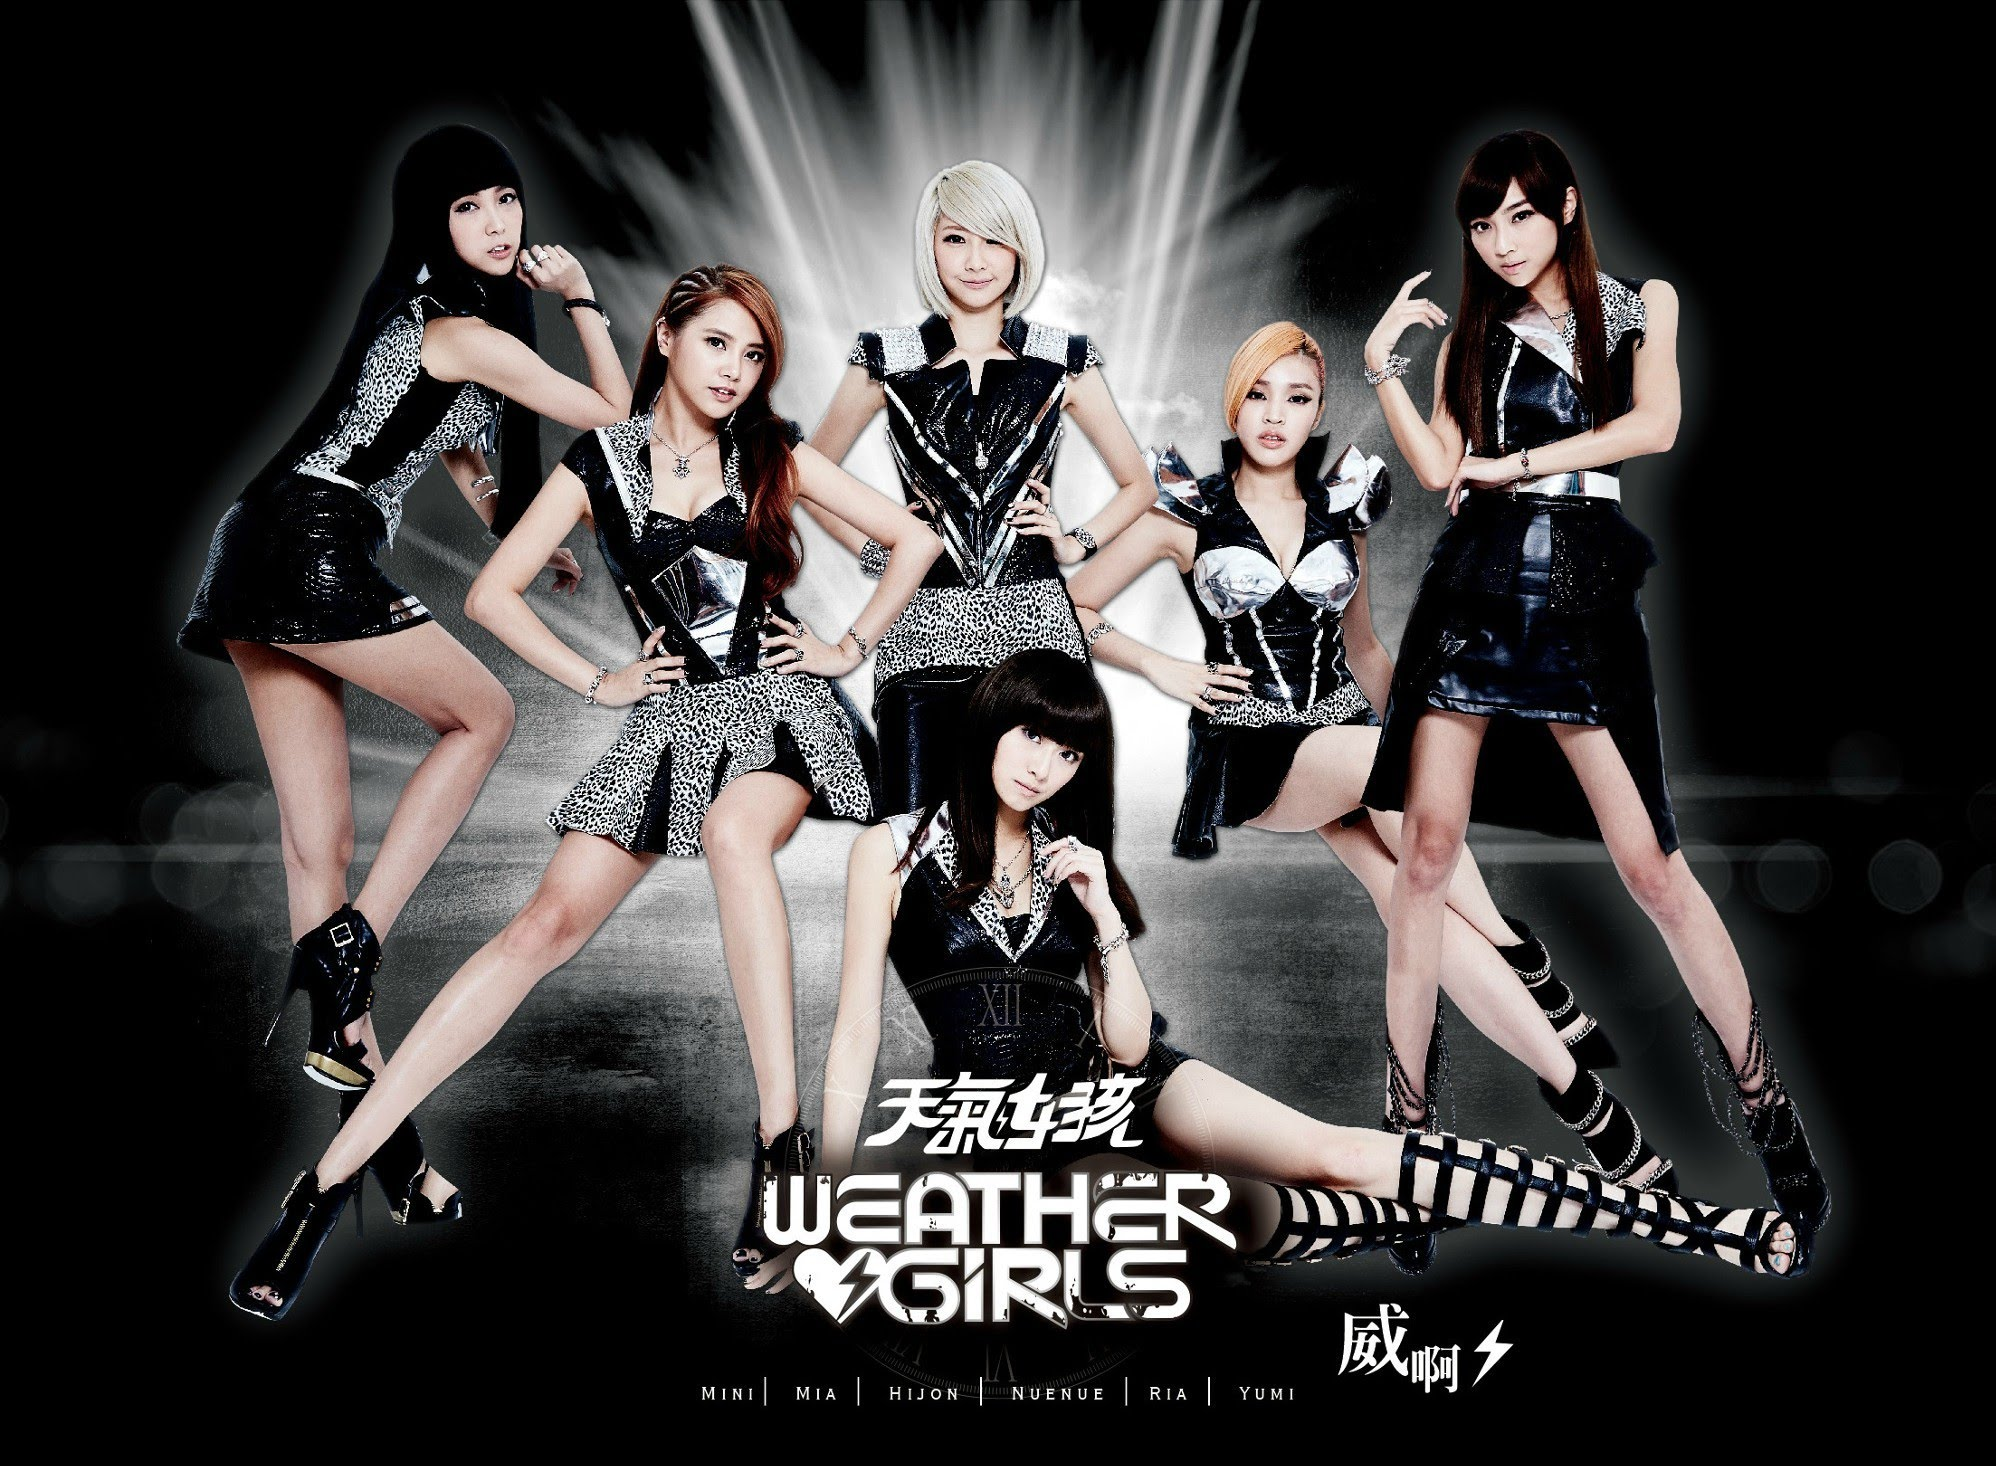 20160107.04.1 Weather Girls - Wei A cover.jpg